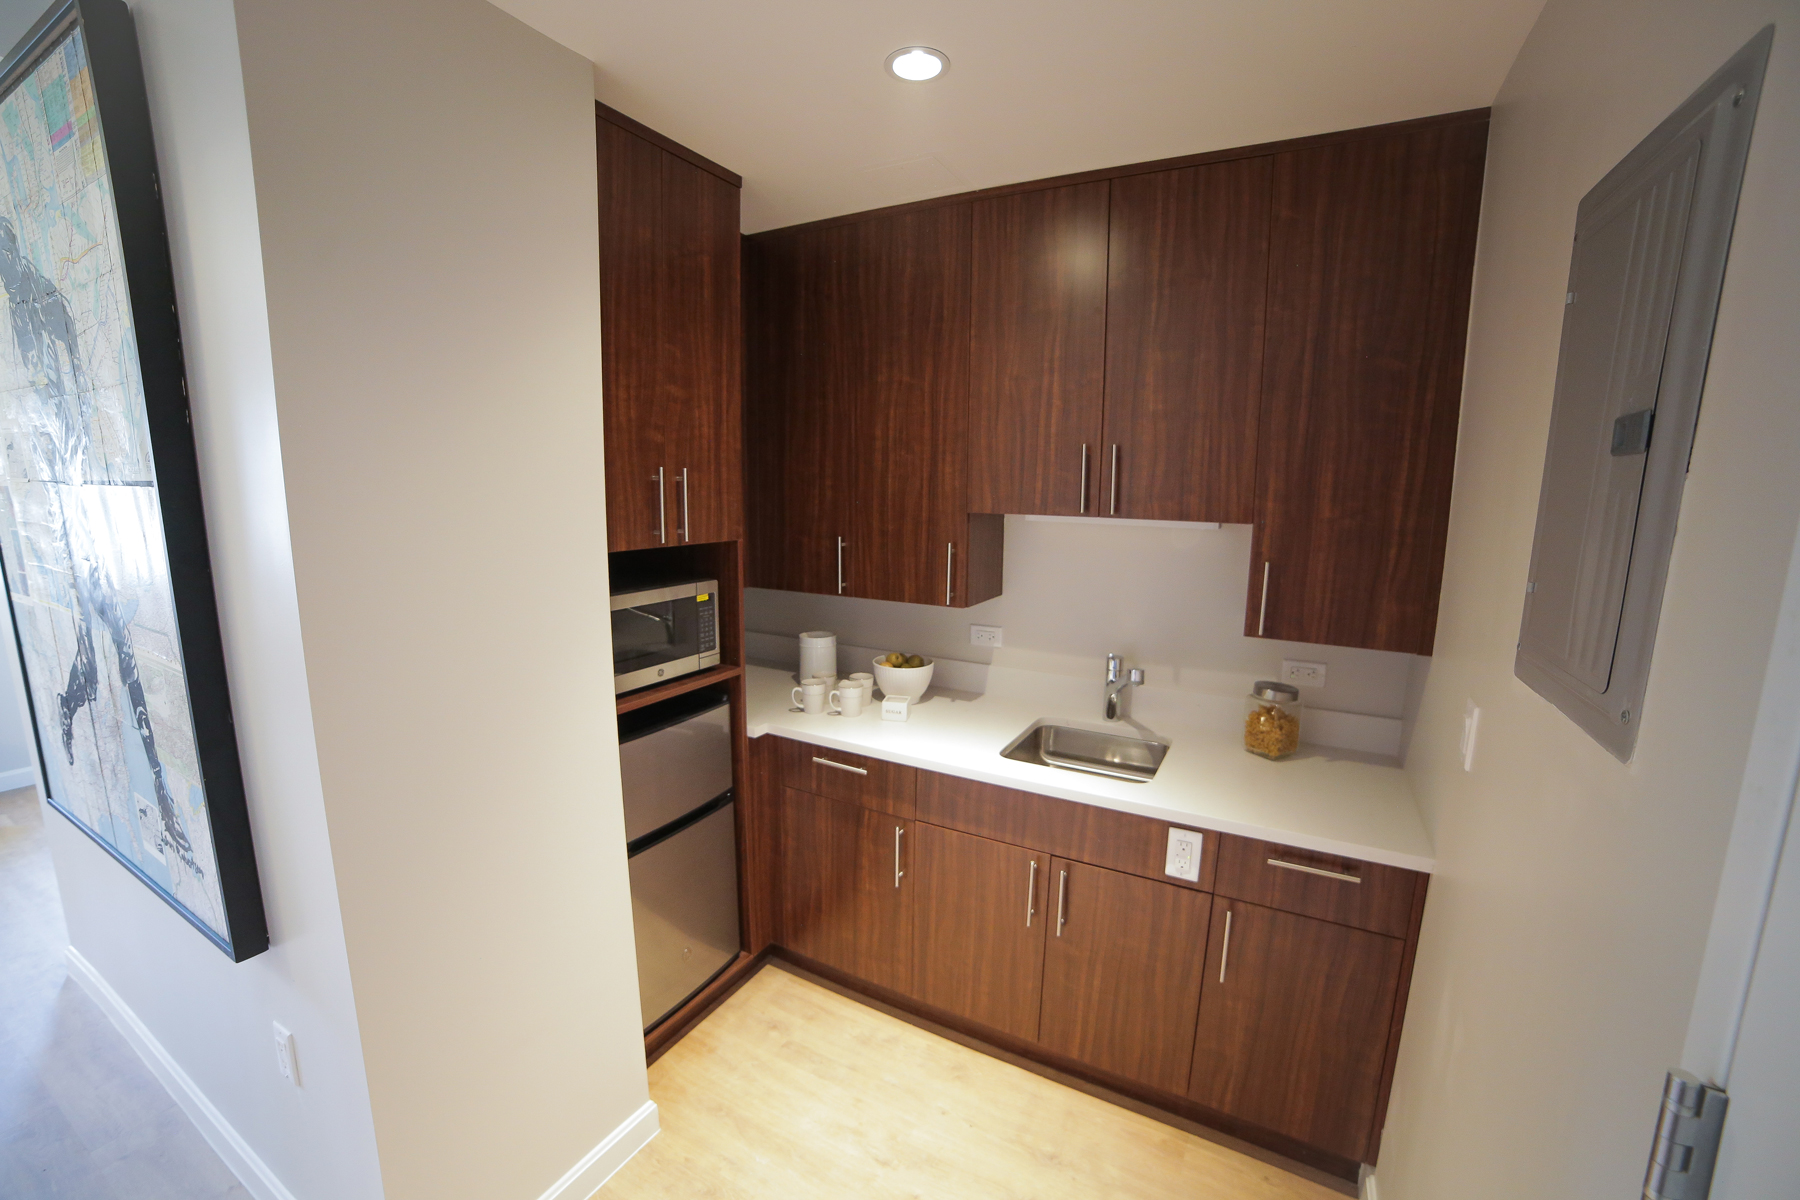 A Studio Plus kitchen featuring stainless steel appliances and large counter-tops.